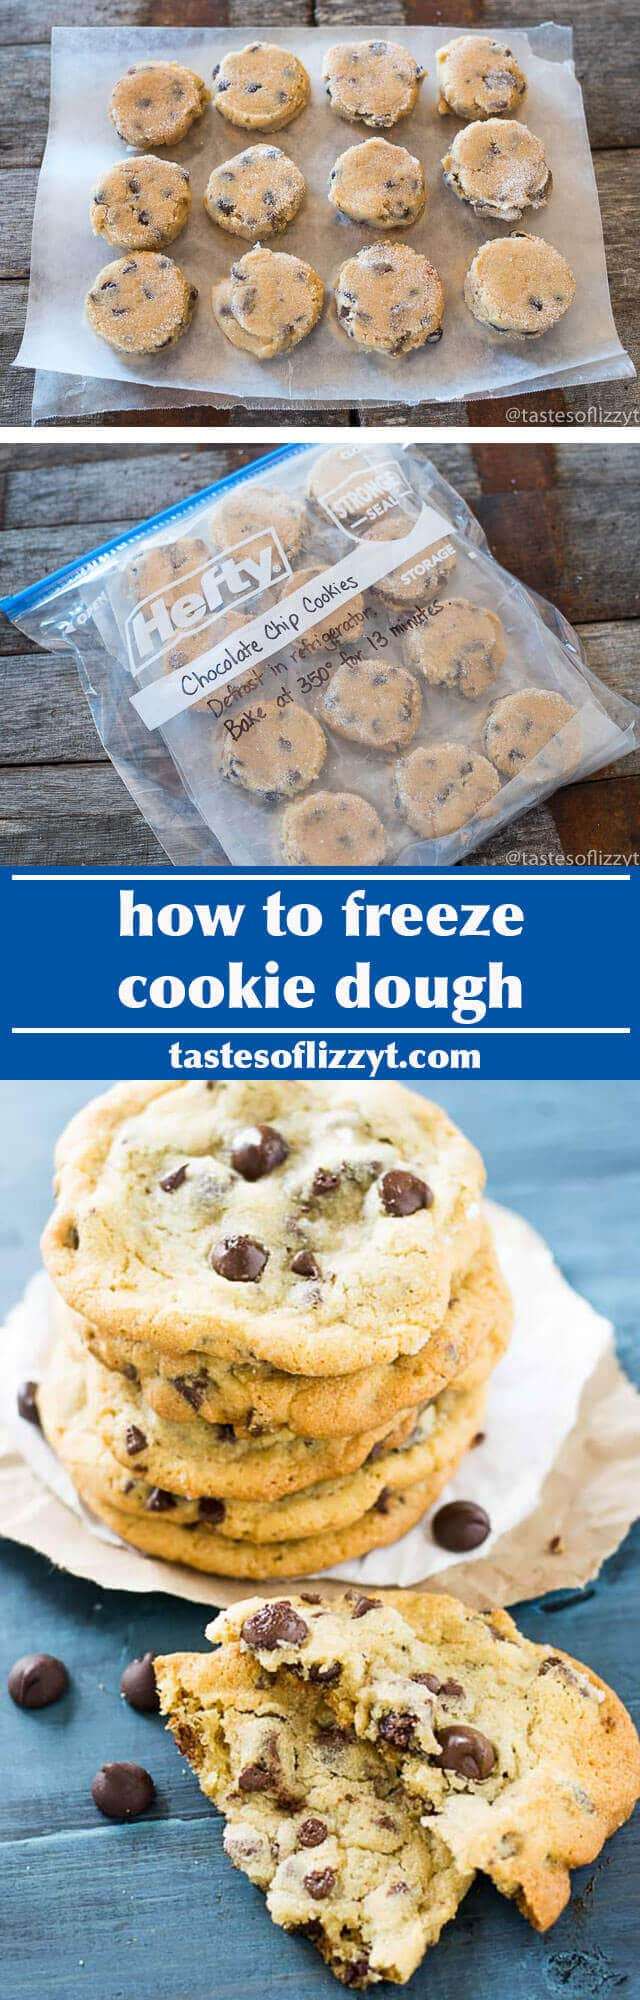 How To Freeze Cookie Dough {hints For Packing & Defrosting Cookies}